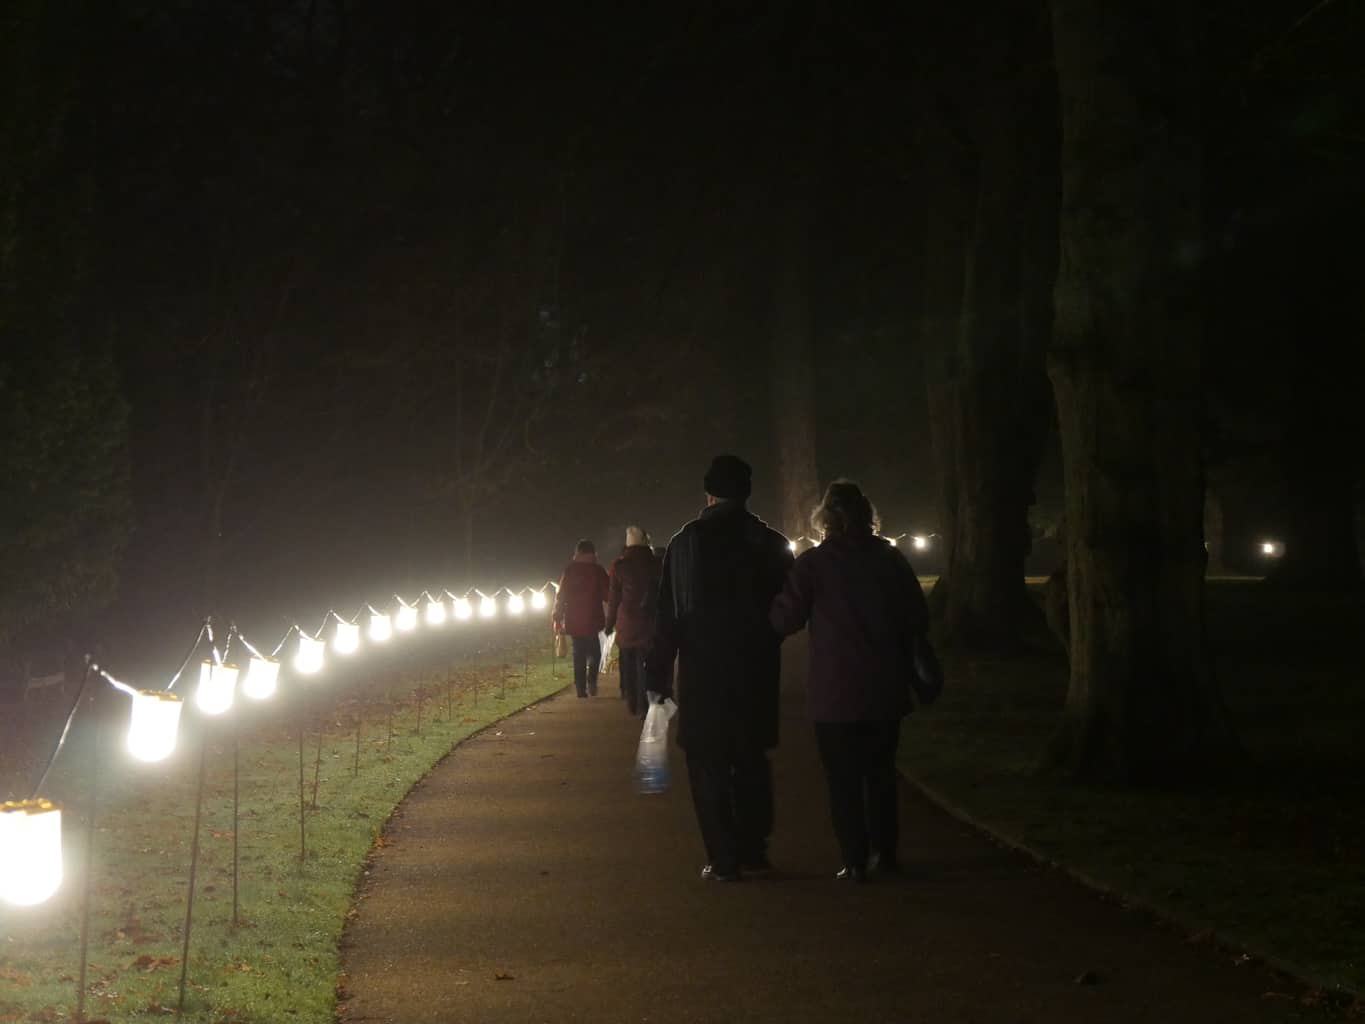 Night time lit path at Waddesdon Manor with people walking on it